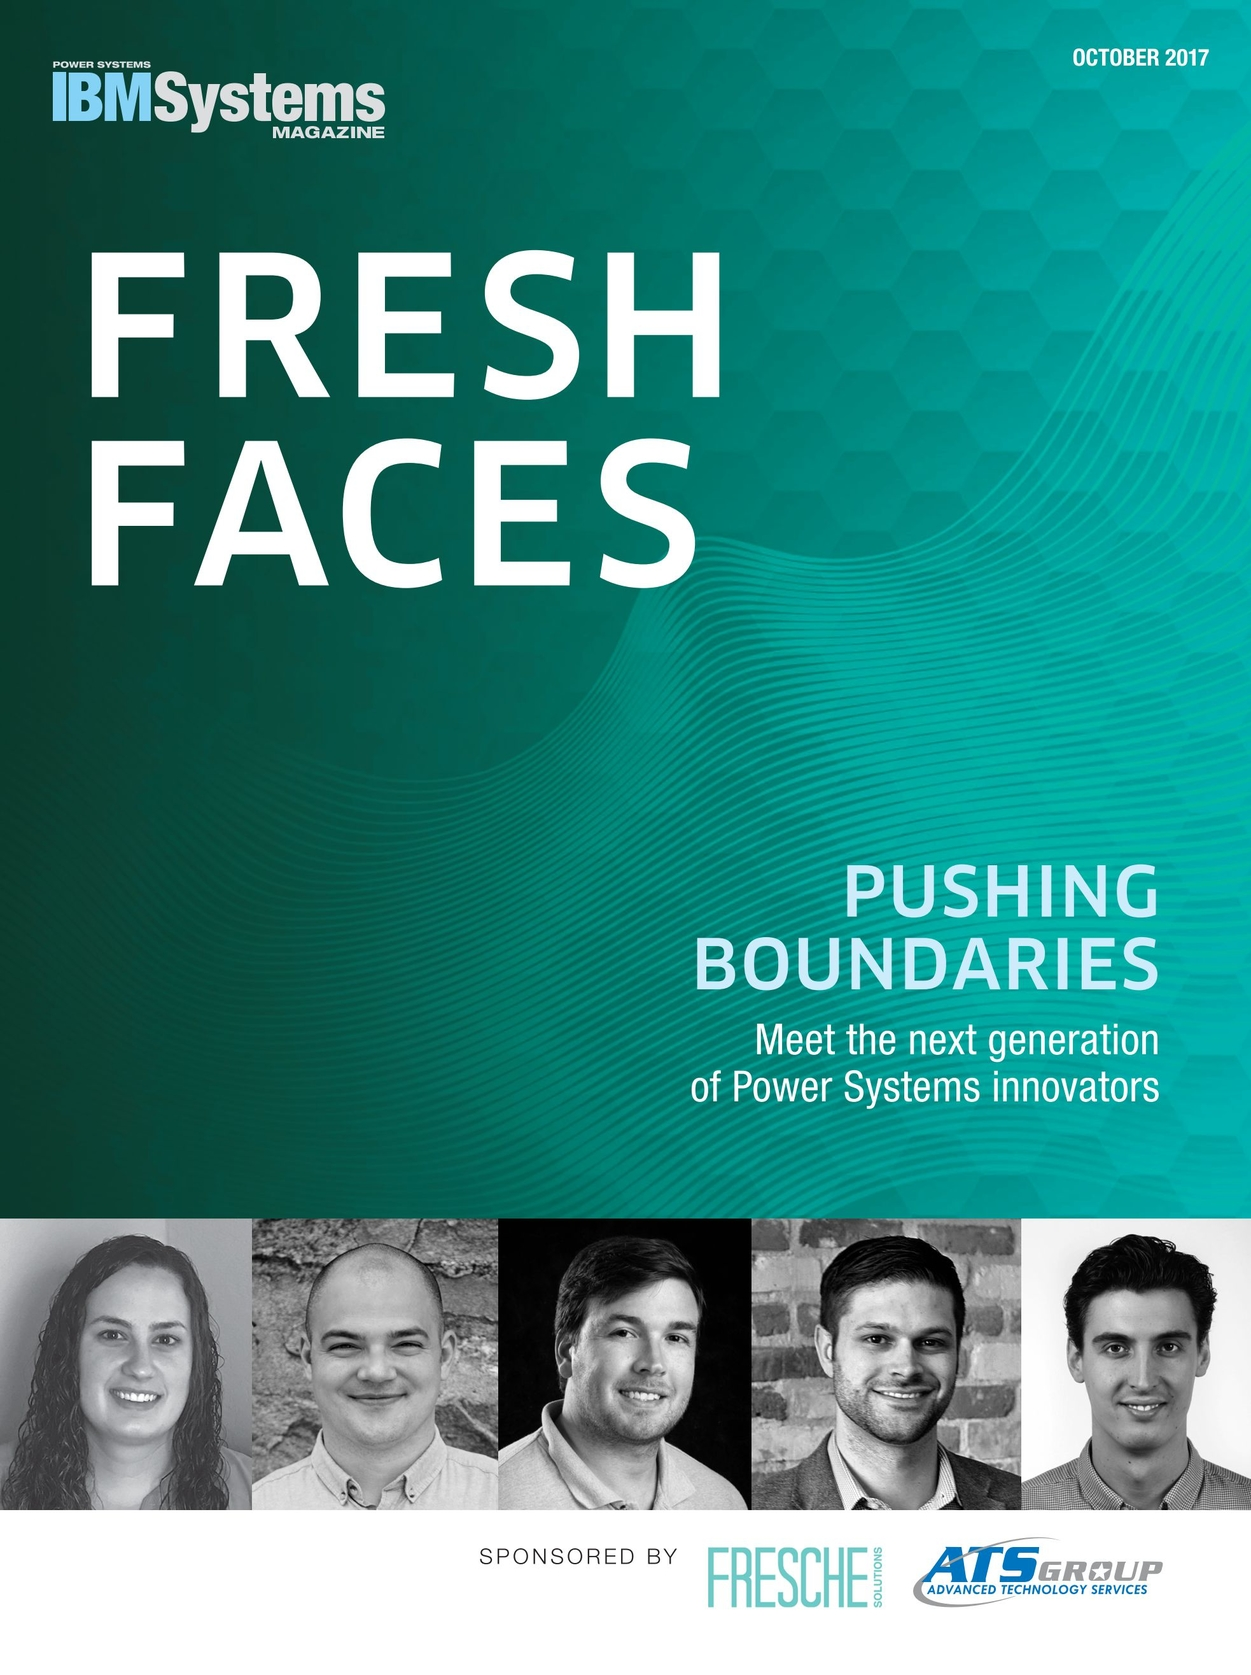 IBM Systems Magazine Power Systems Fresh Faces October 2017